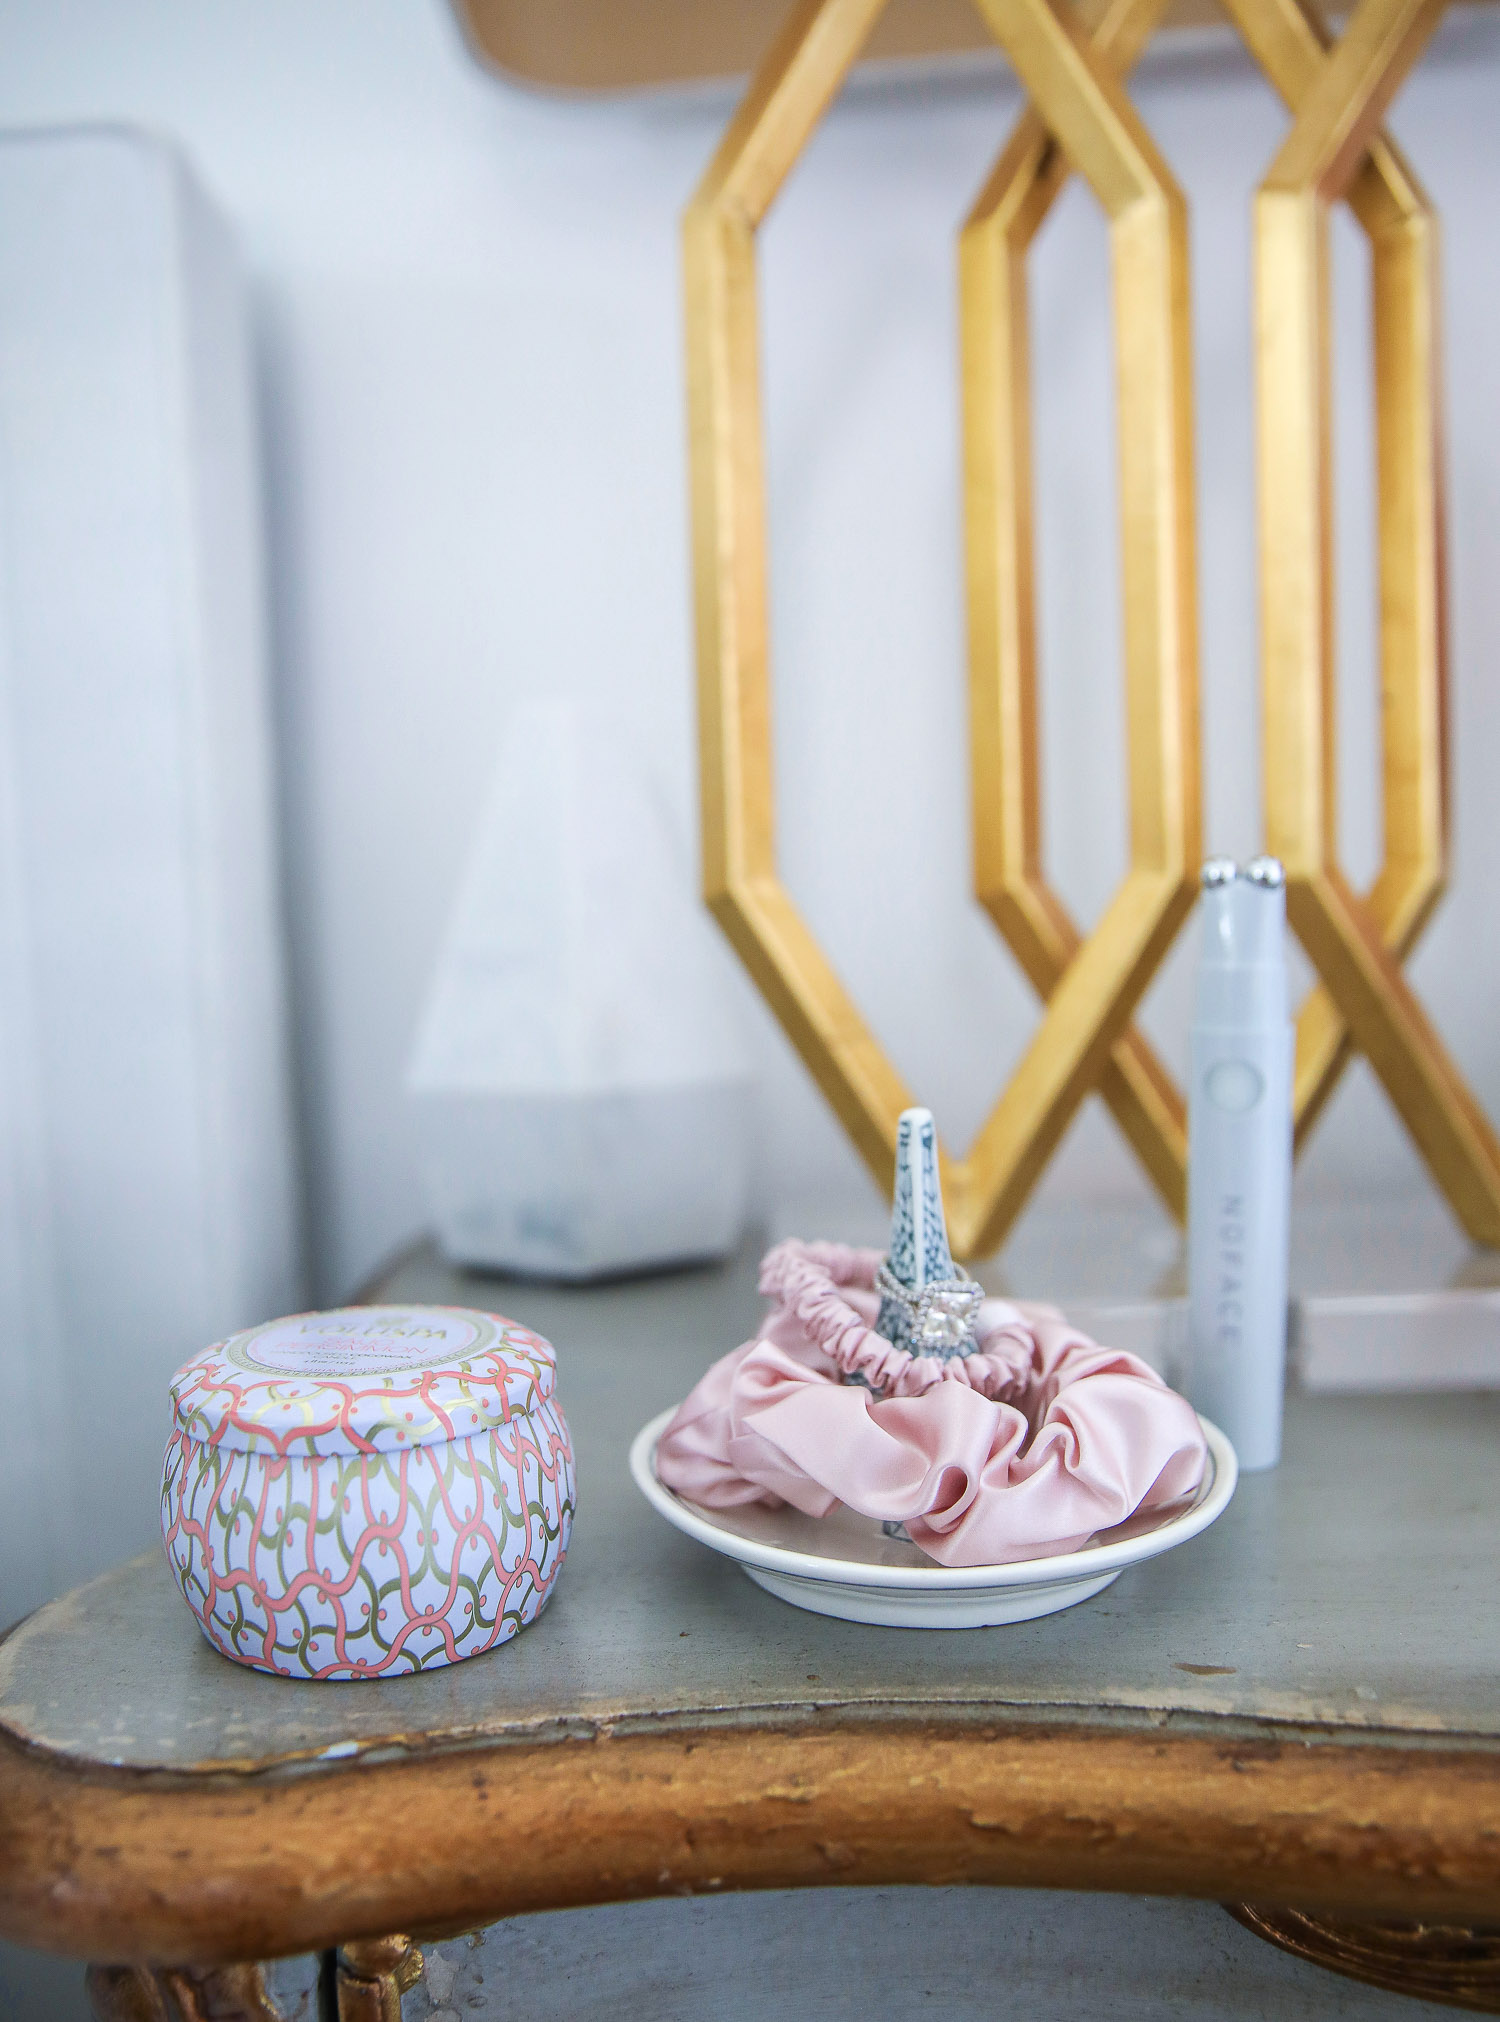 Nordstrom Anniversary Sale 2021 by popular US life and style blog, The Sweetest Thing: image of a master bedroom with a Voulspa candle and ring holder containing pink silk scrunchies and a diamond wedding band.